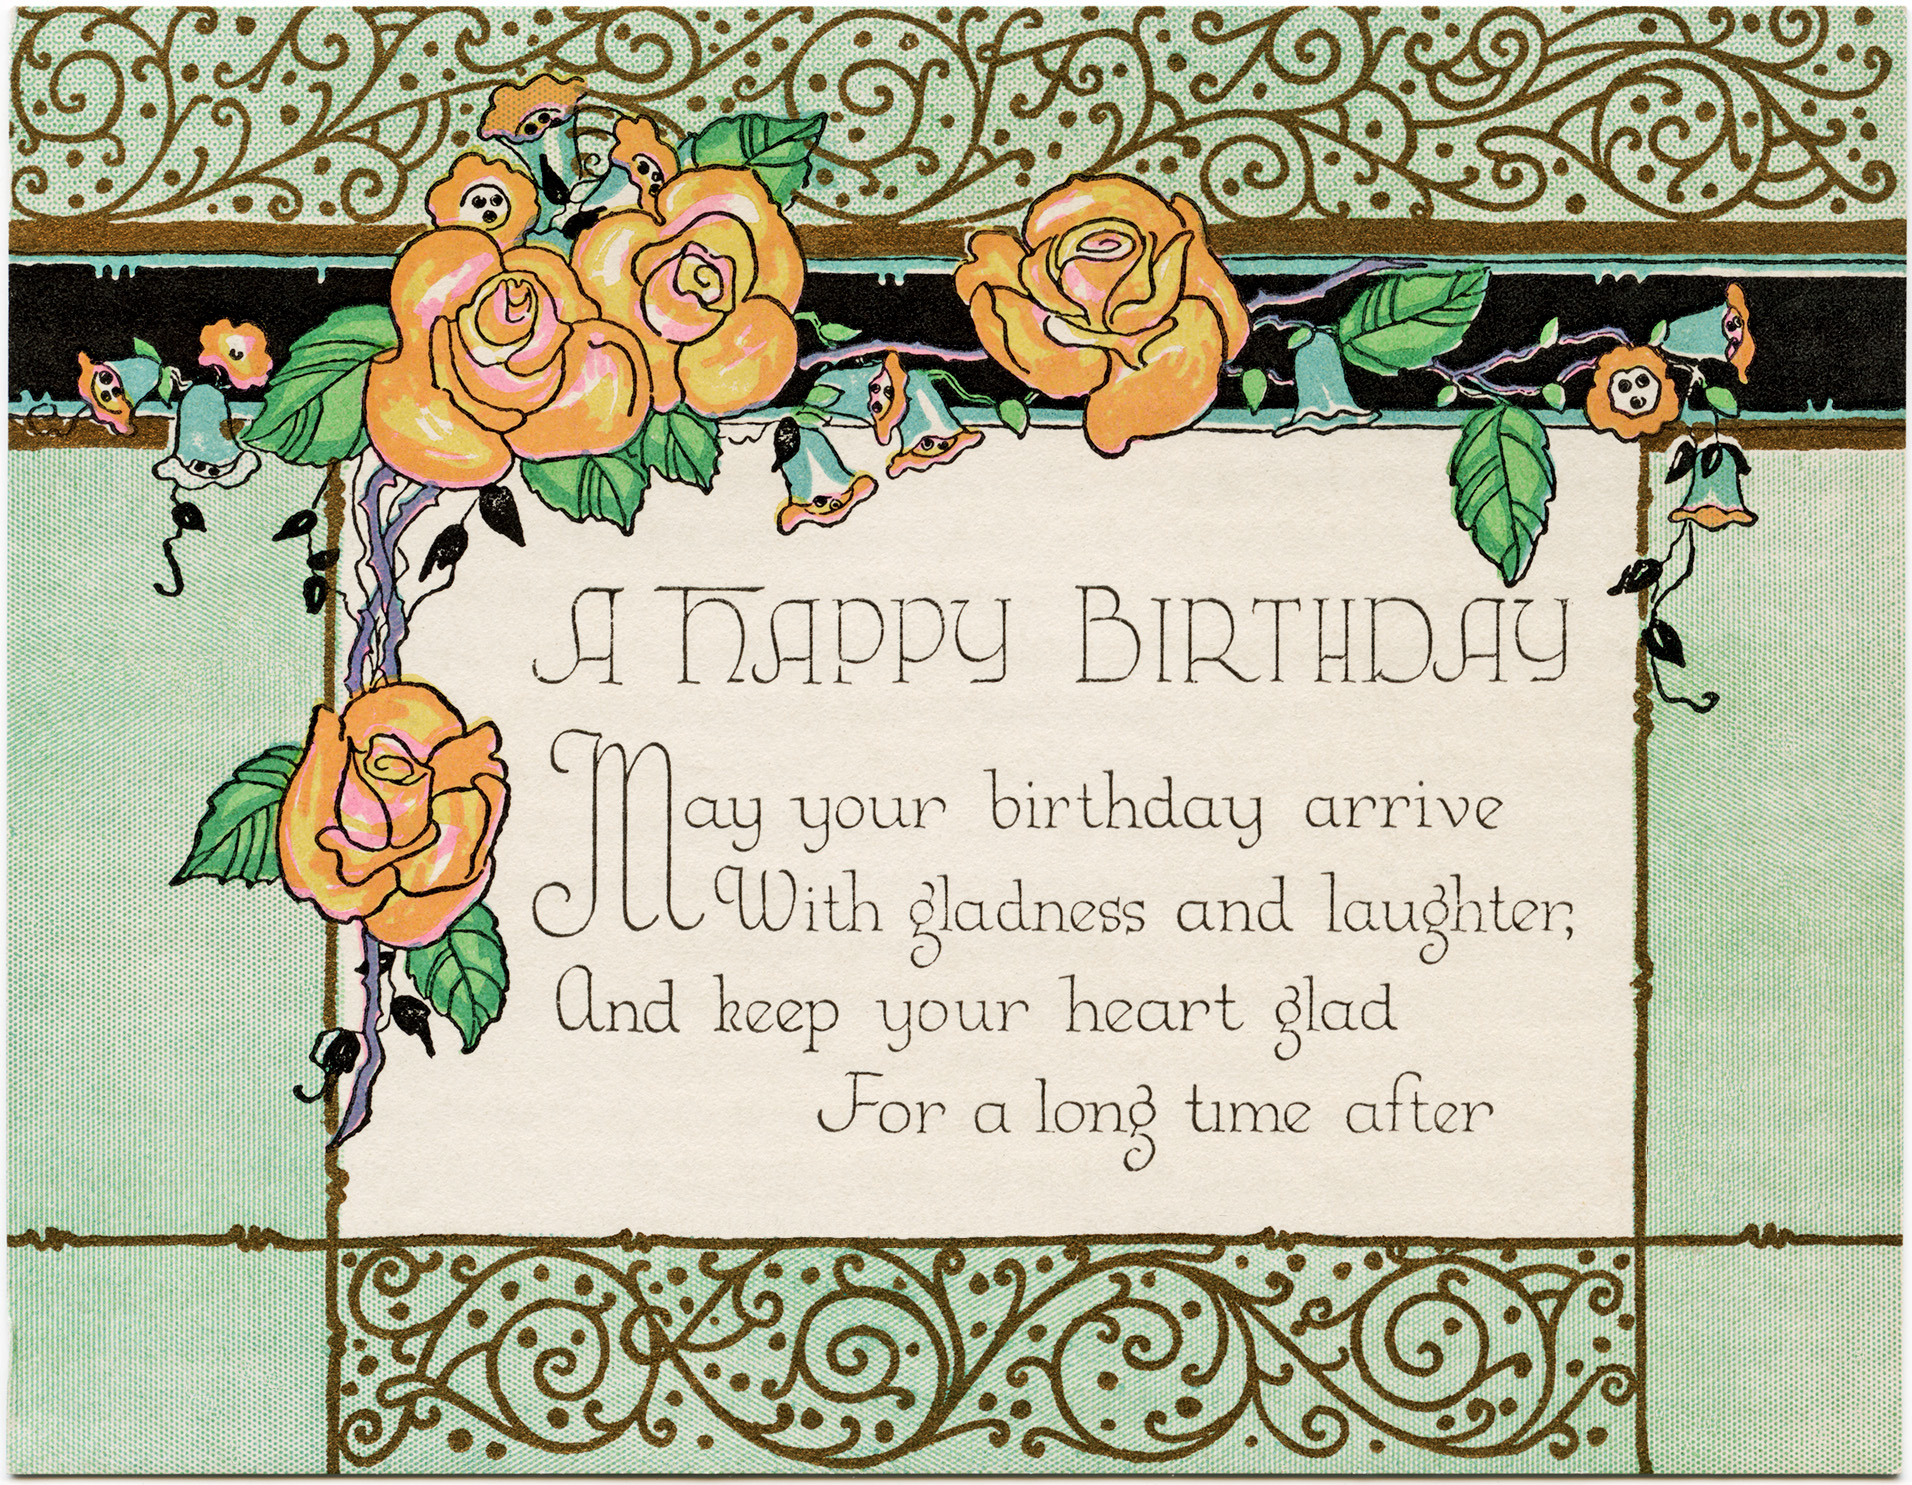 Vintage birthday card clipart picture library stock Art Deco Birthday Card ~ Free Download - Old Design Shop Blog picture library stock